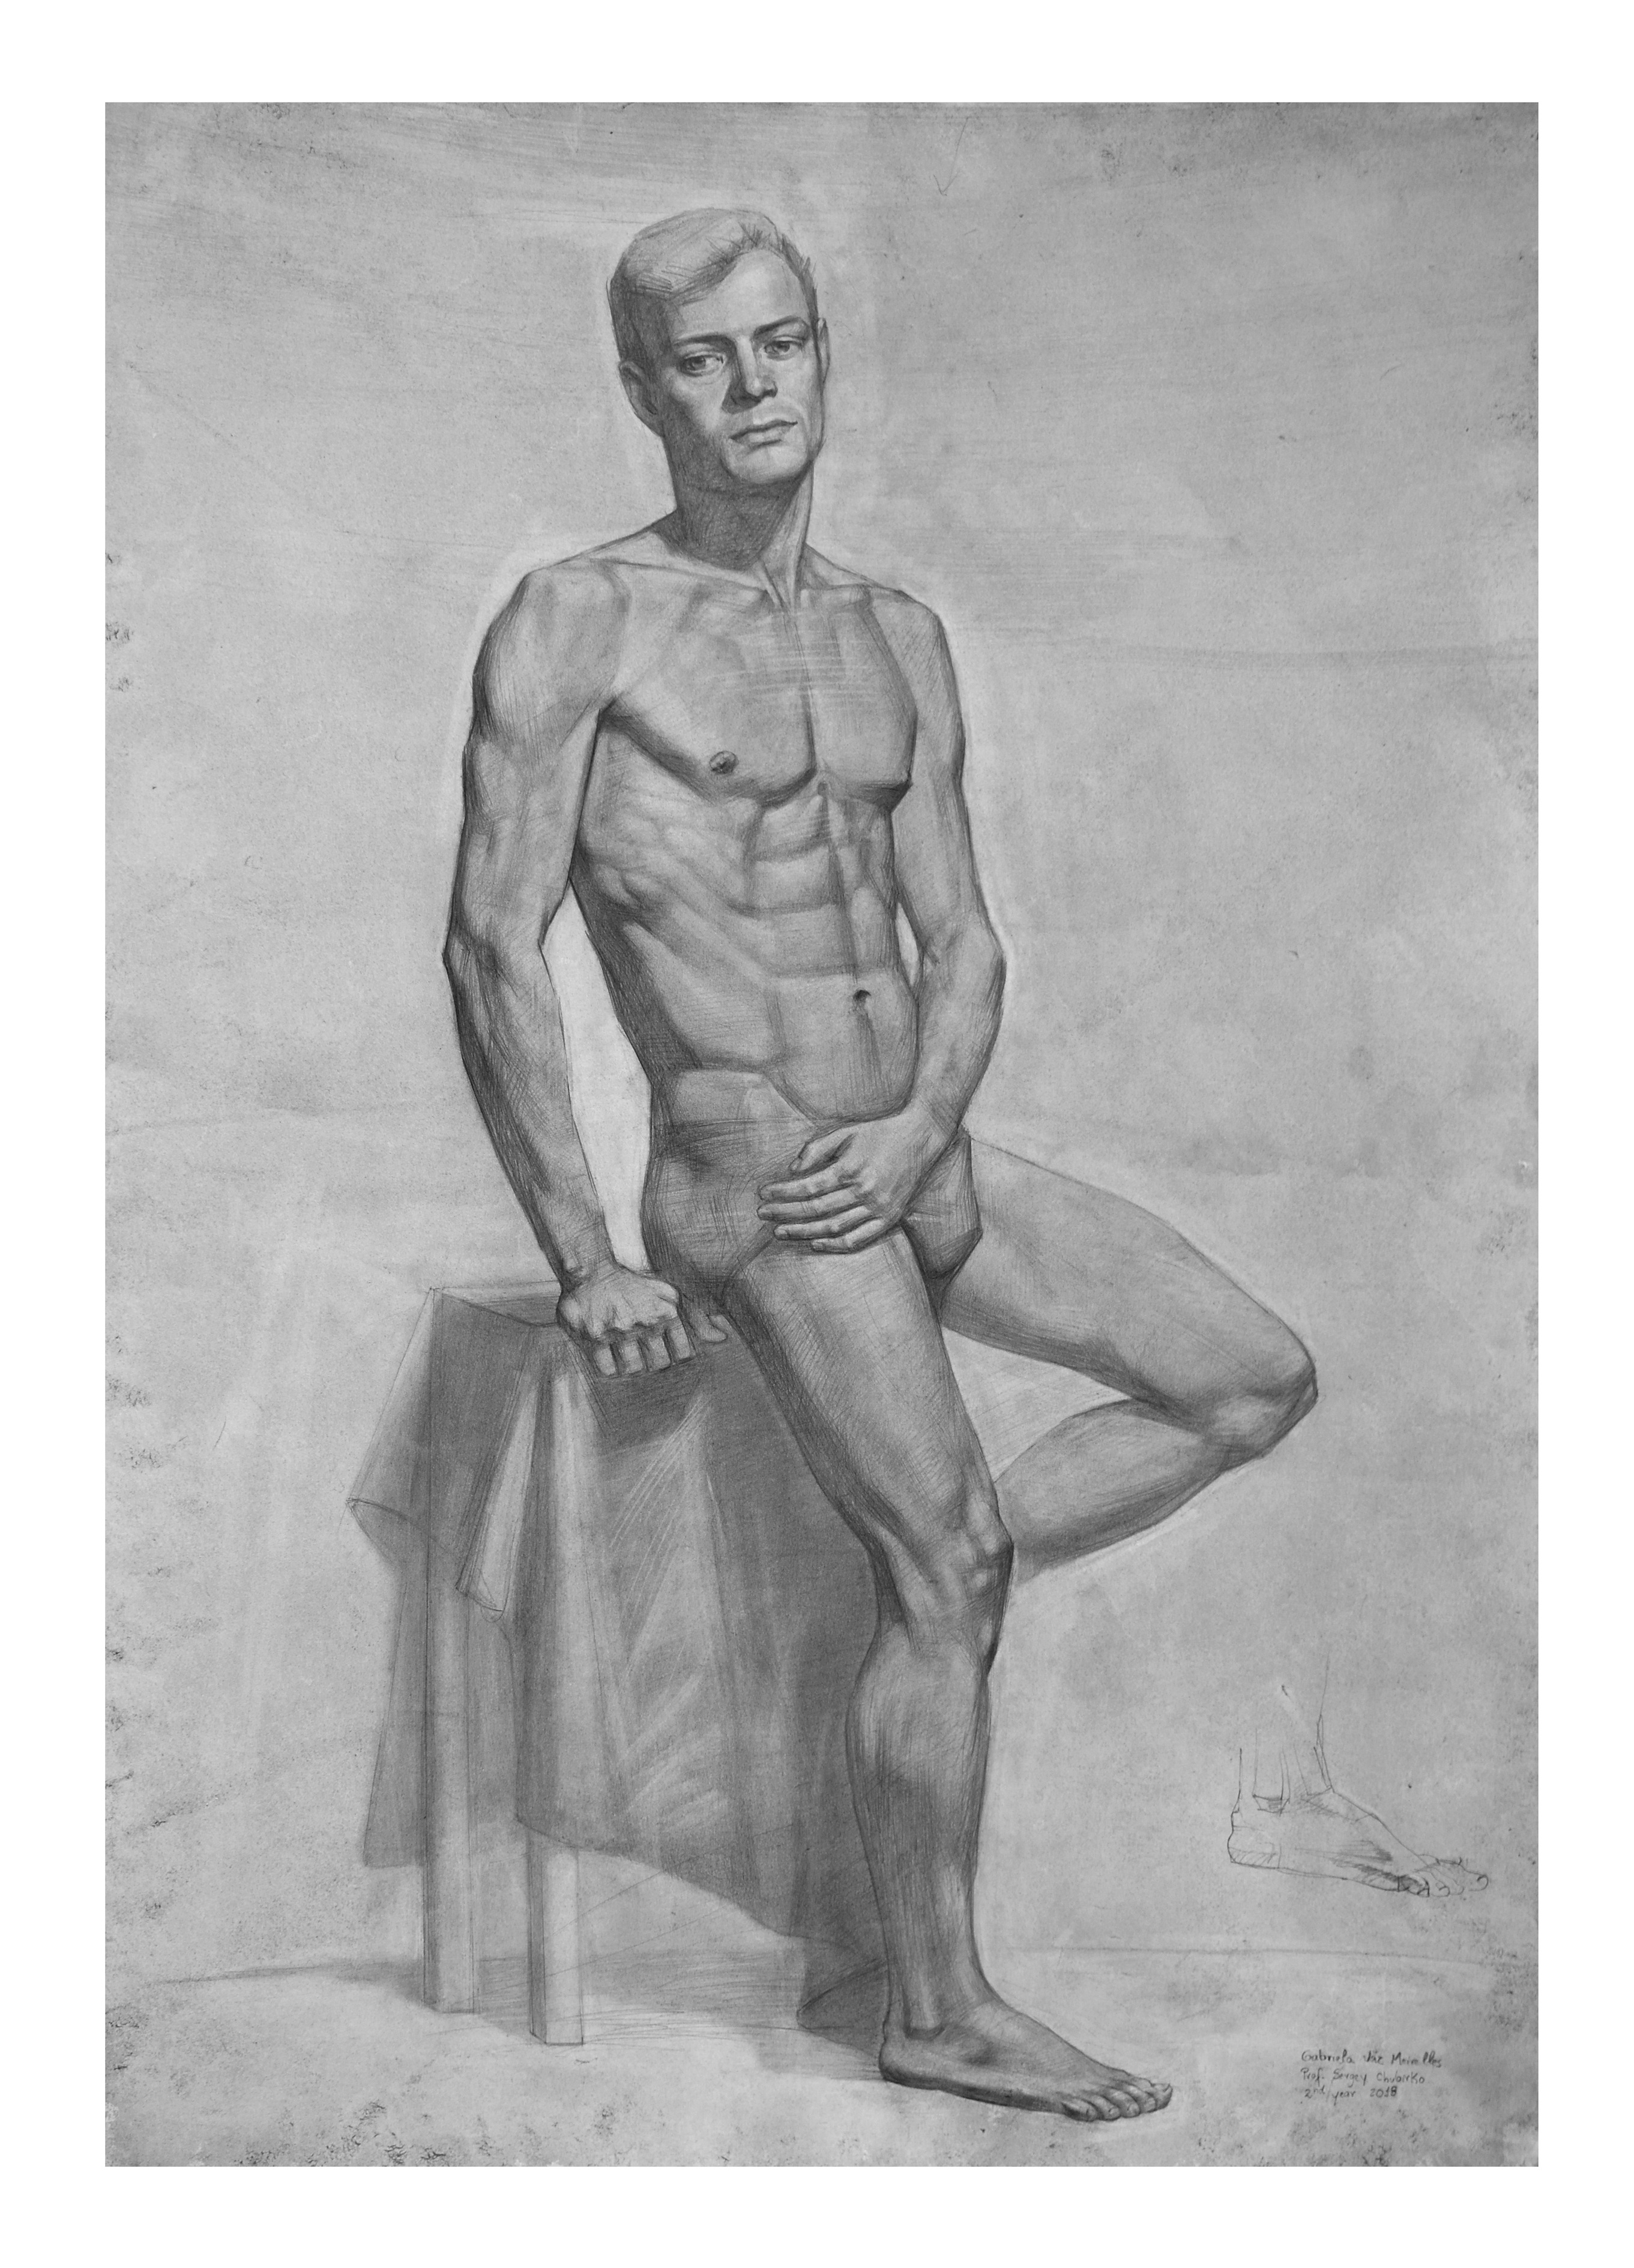 Male figure, graphite on toned paper, 70 x 50 cm, 2018